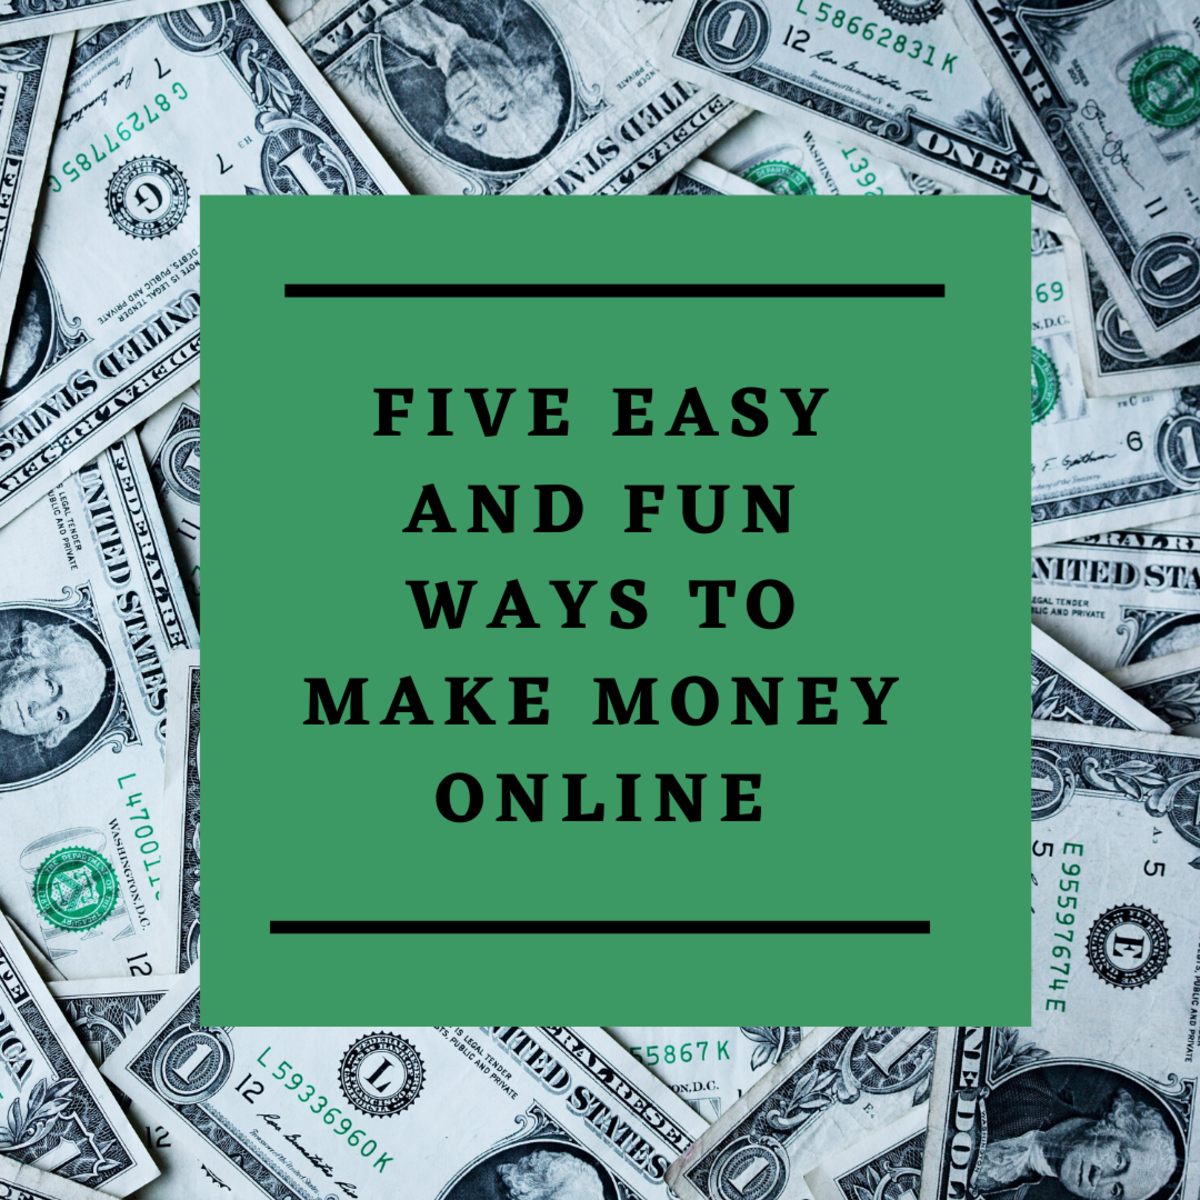 Five Easy and Fun Ways to Make Money Online